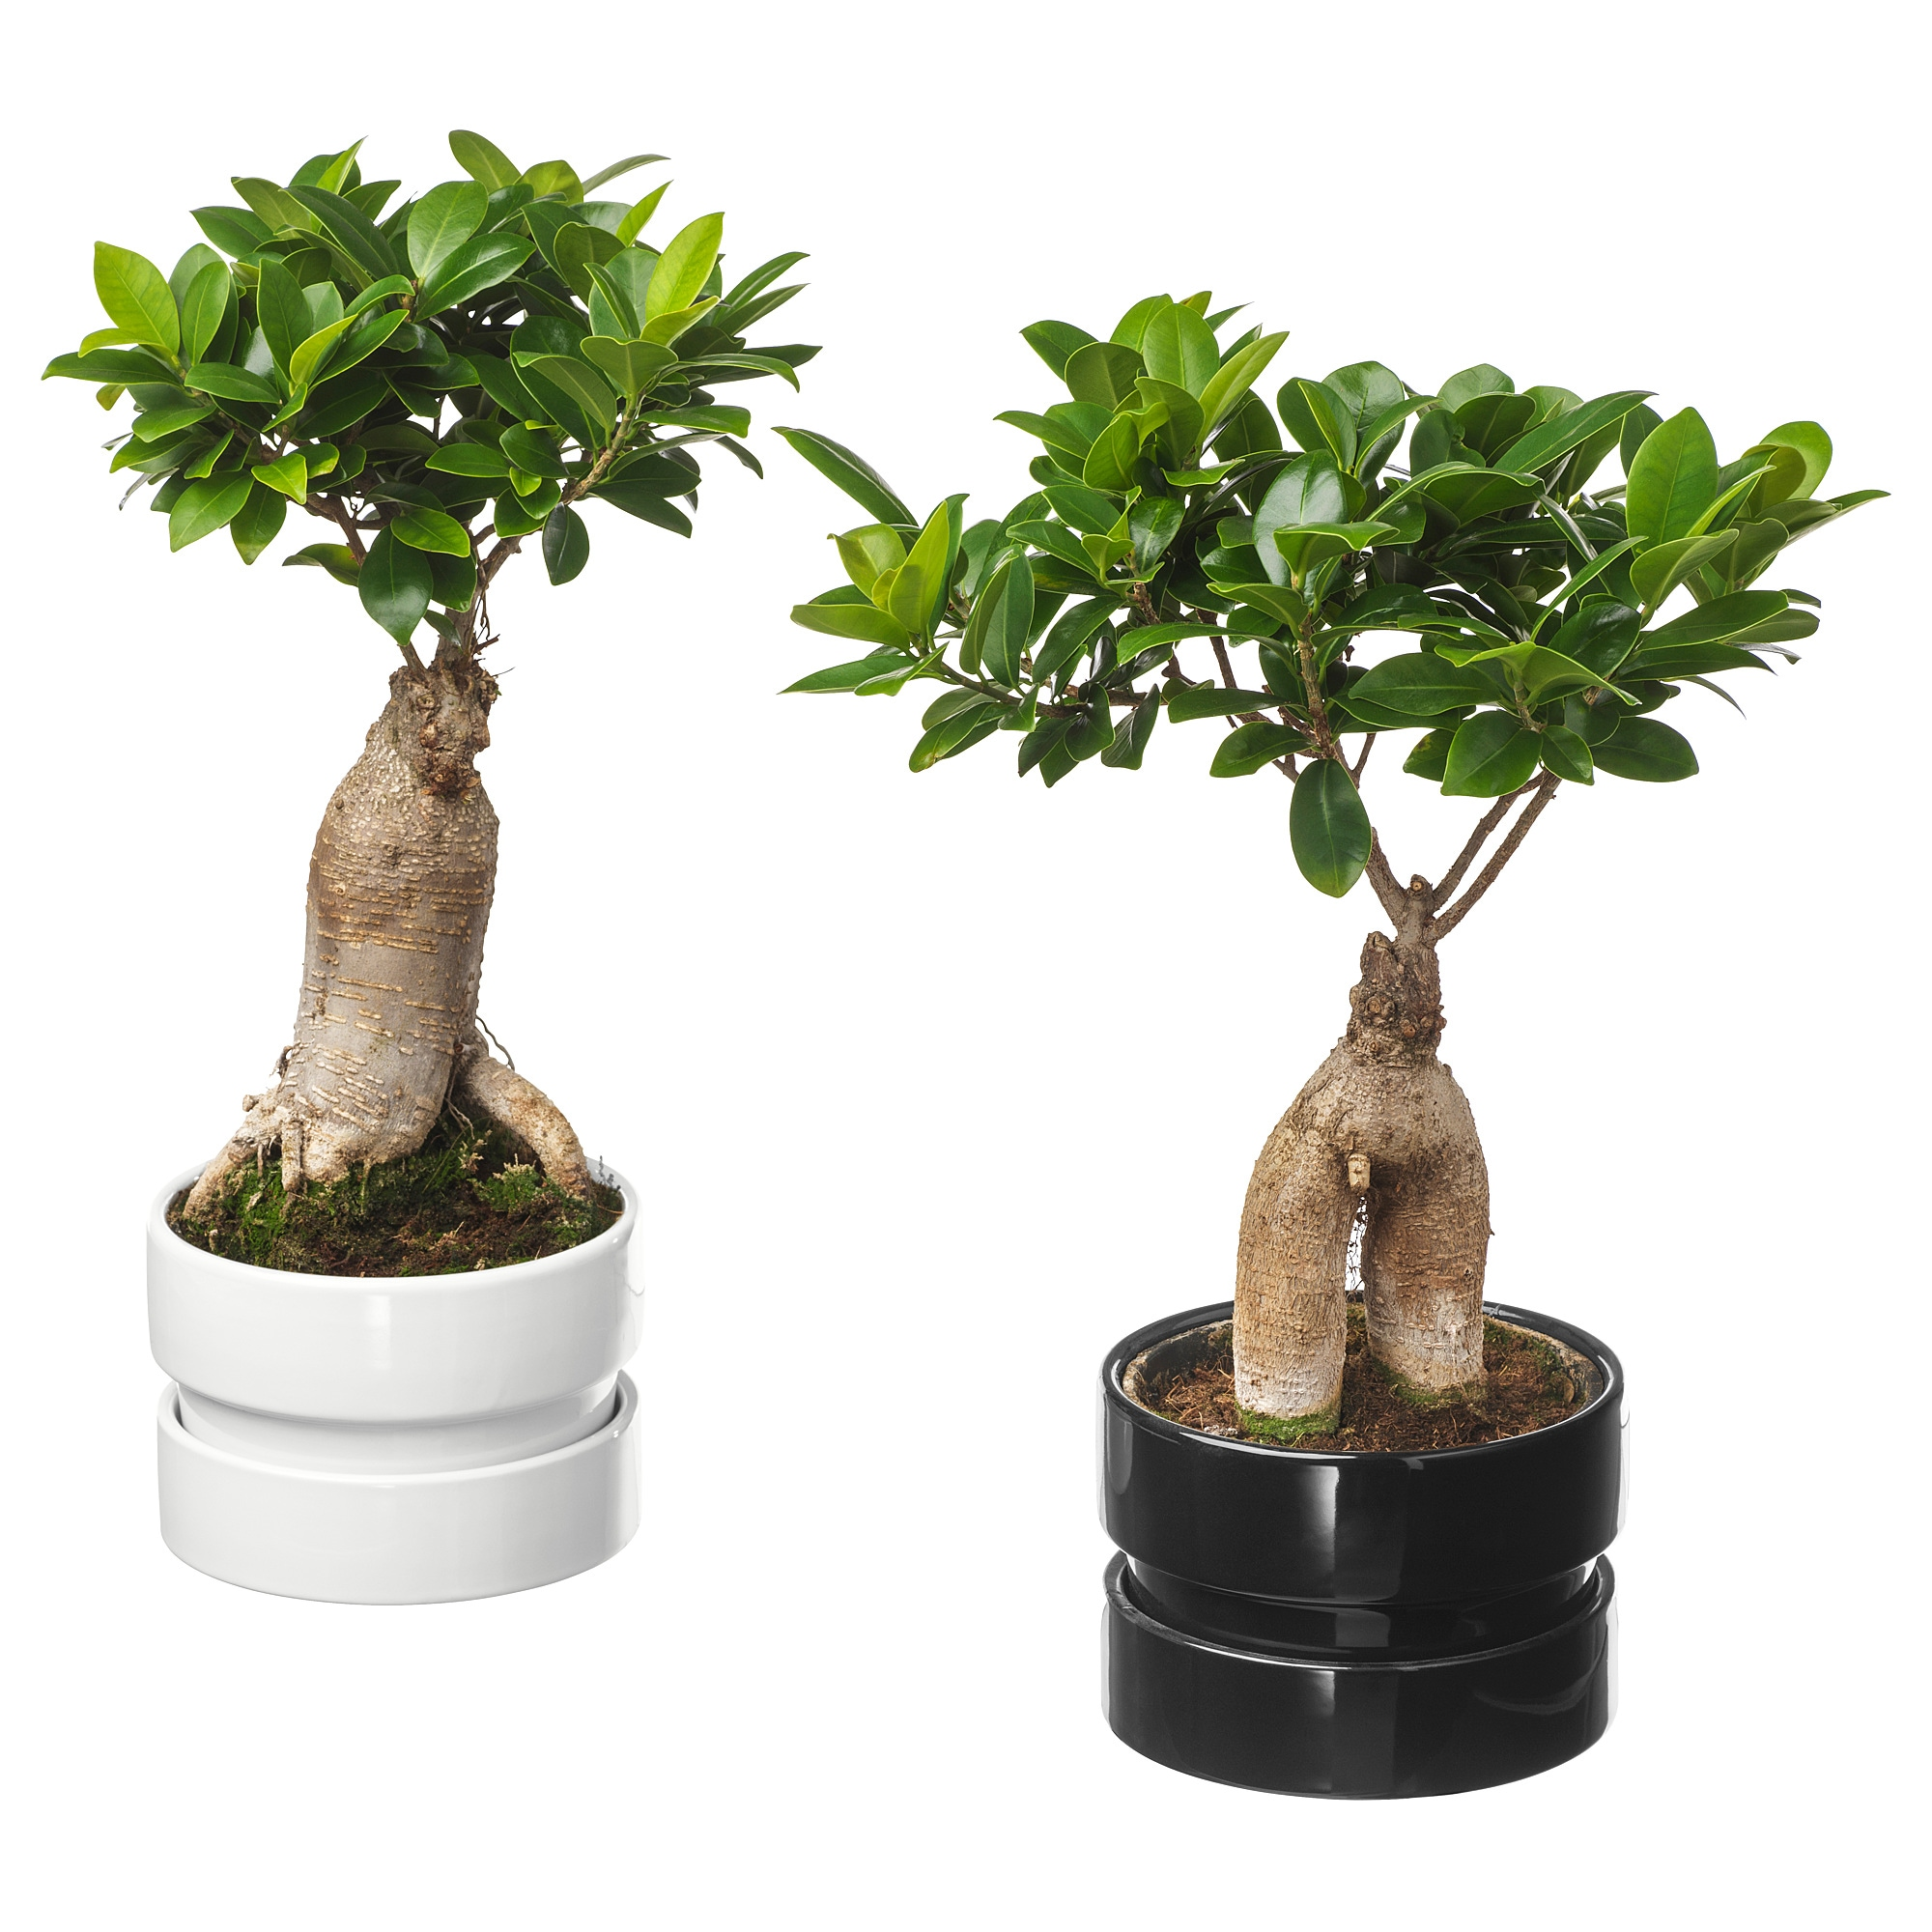 Ficus Microcarpa Ginseng Plant With Pot Bonsai Orted Colors